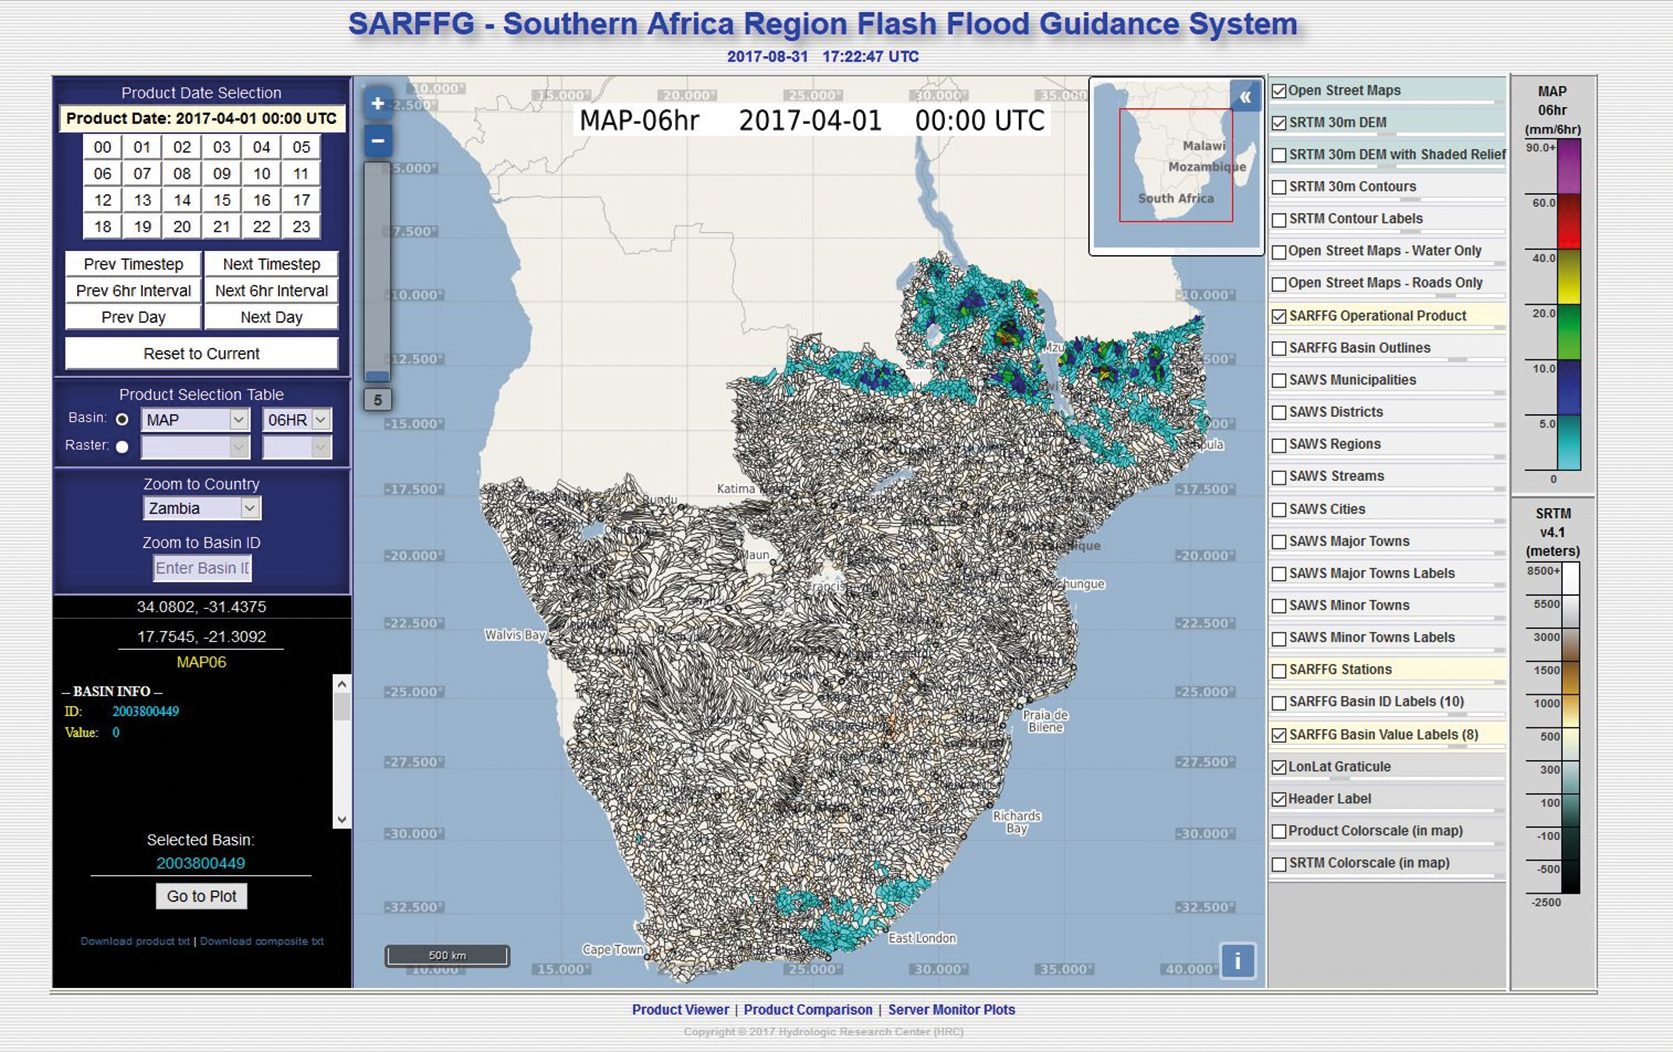 Figure 2a. Interactive forecaster interface for the GFFG system referring to the Southern Africa regional system